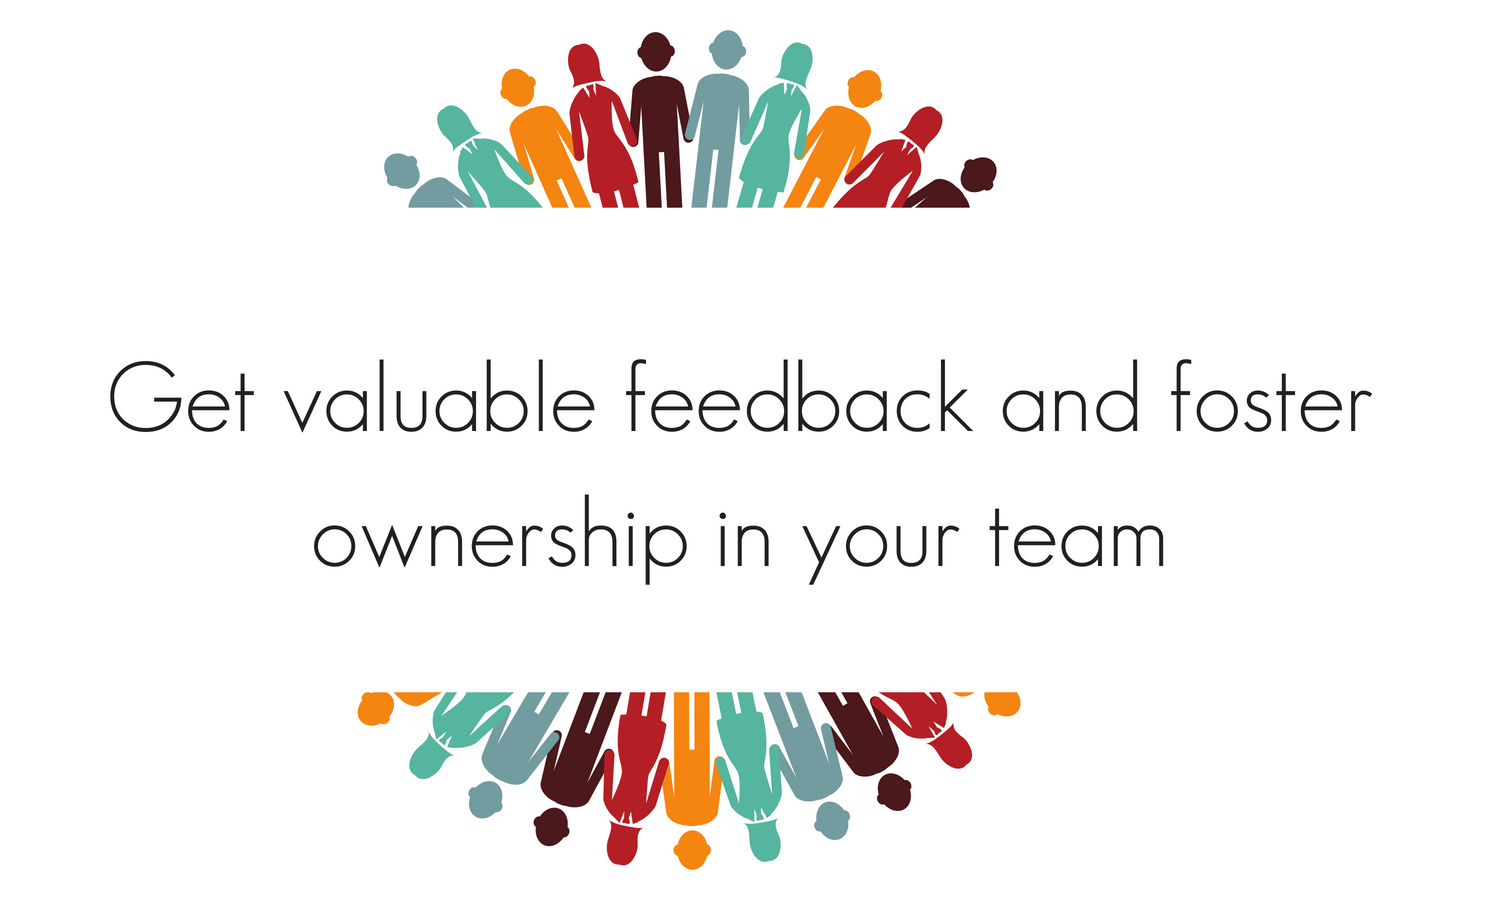 simple teambuilding exercise to get valuable feedback and foster ownership in your team